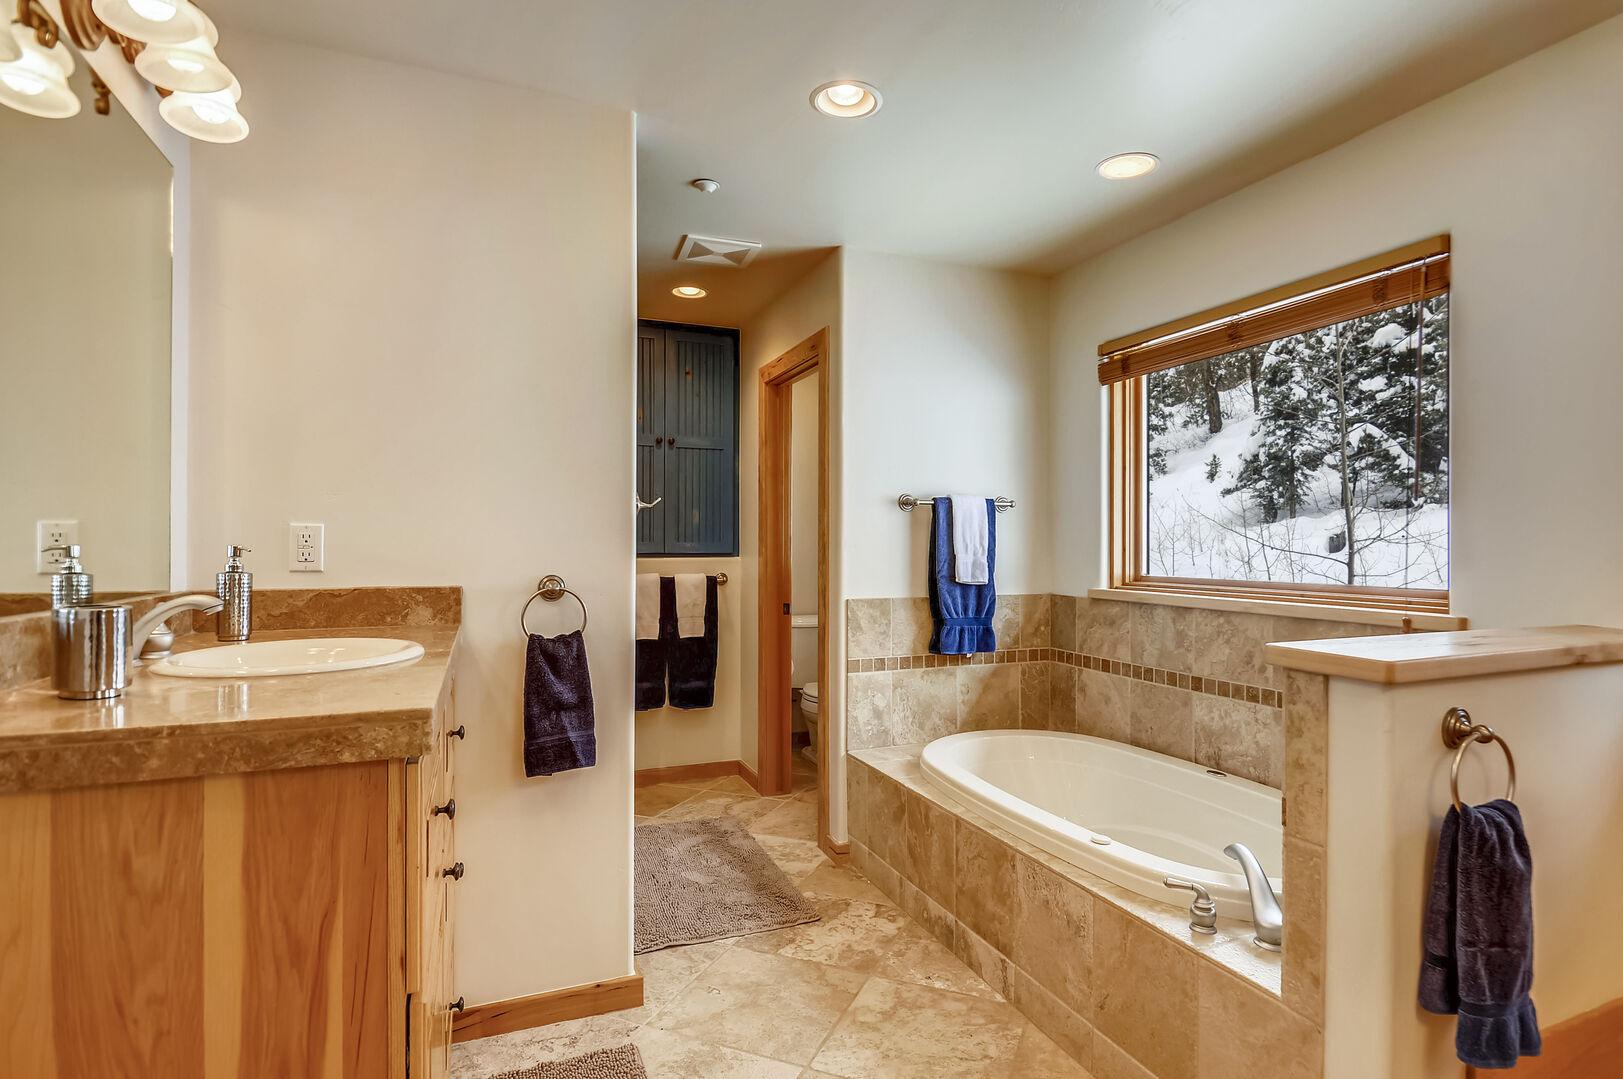 Master Bathroom - another view 2